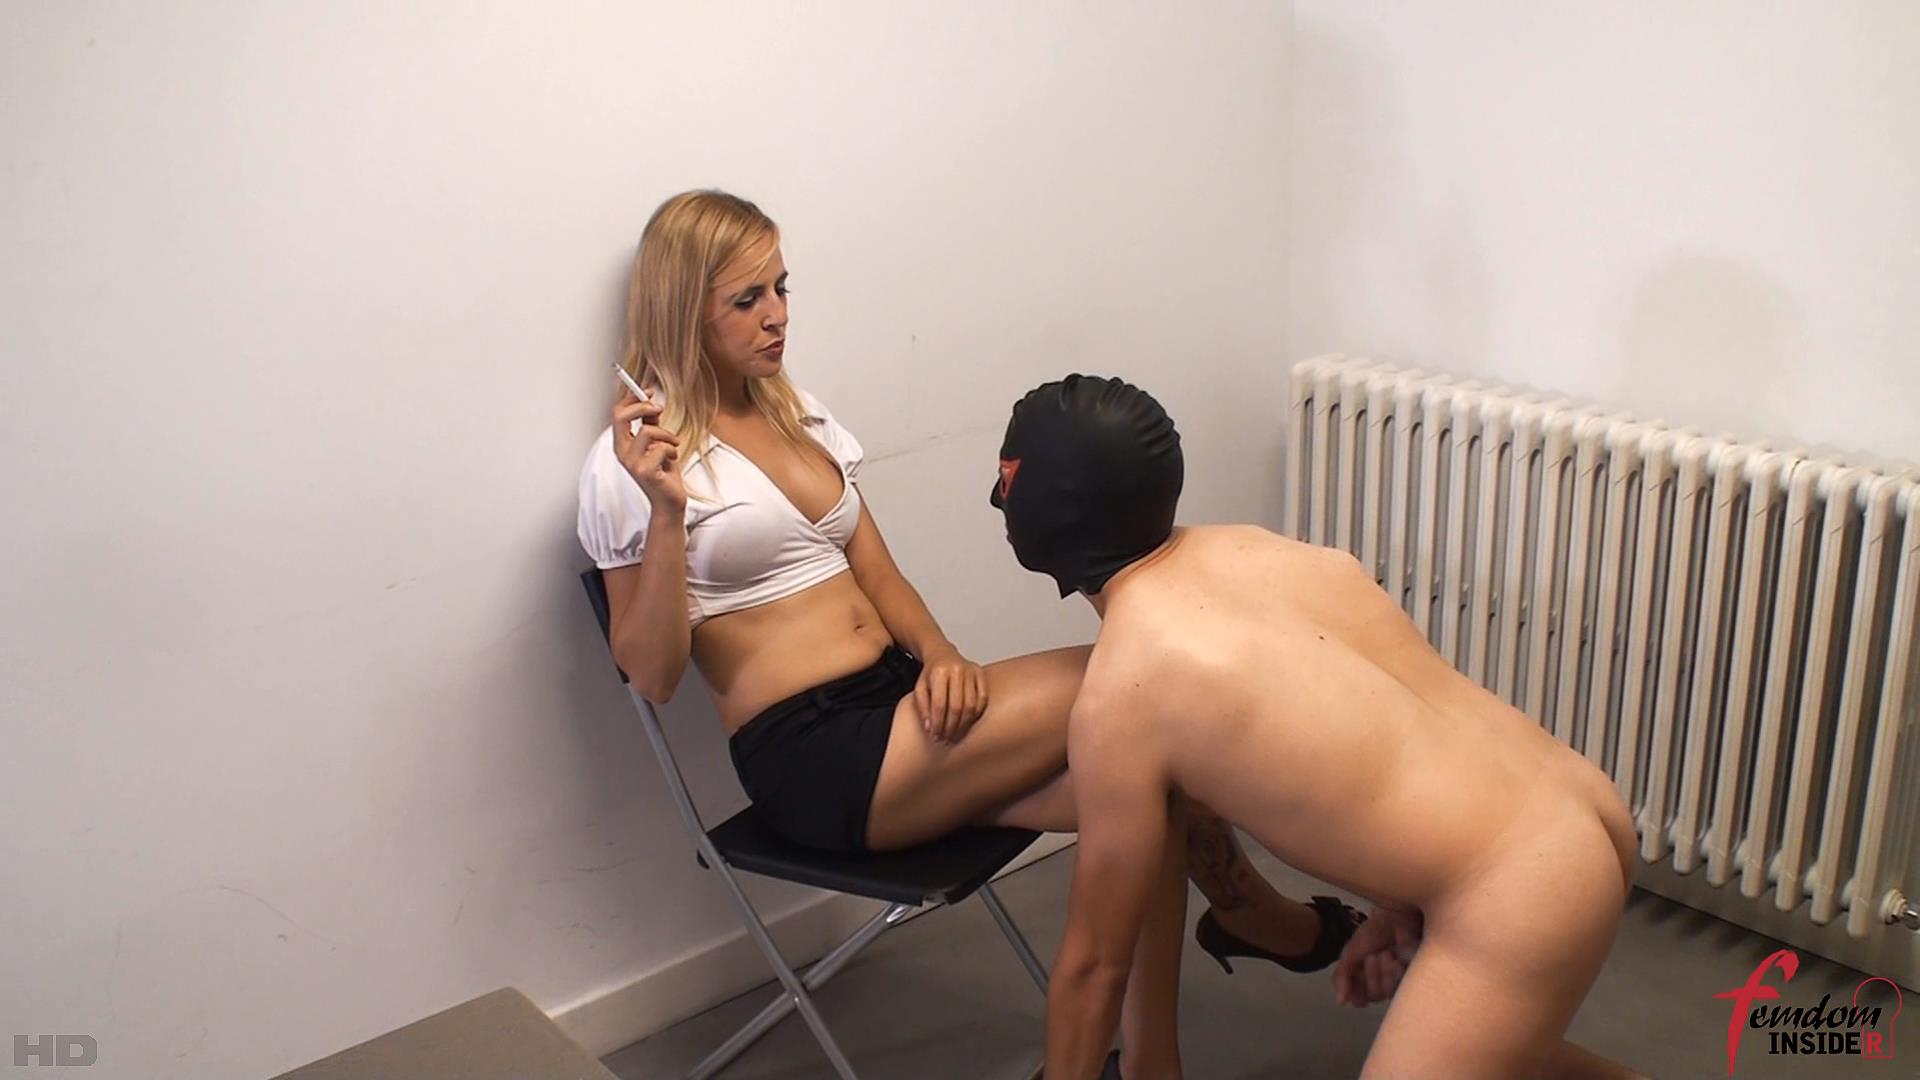 Miss Lesly In Scene: Ashtray Slave's Delight - FEMDOMINSIDER - FULL HD/1080p/WMV